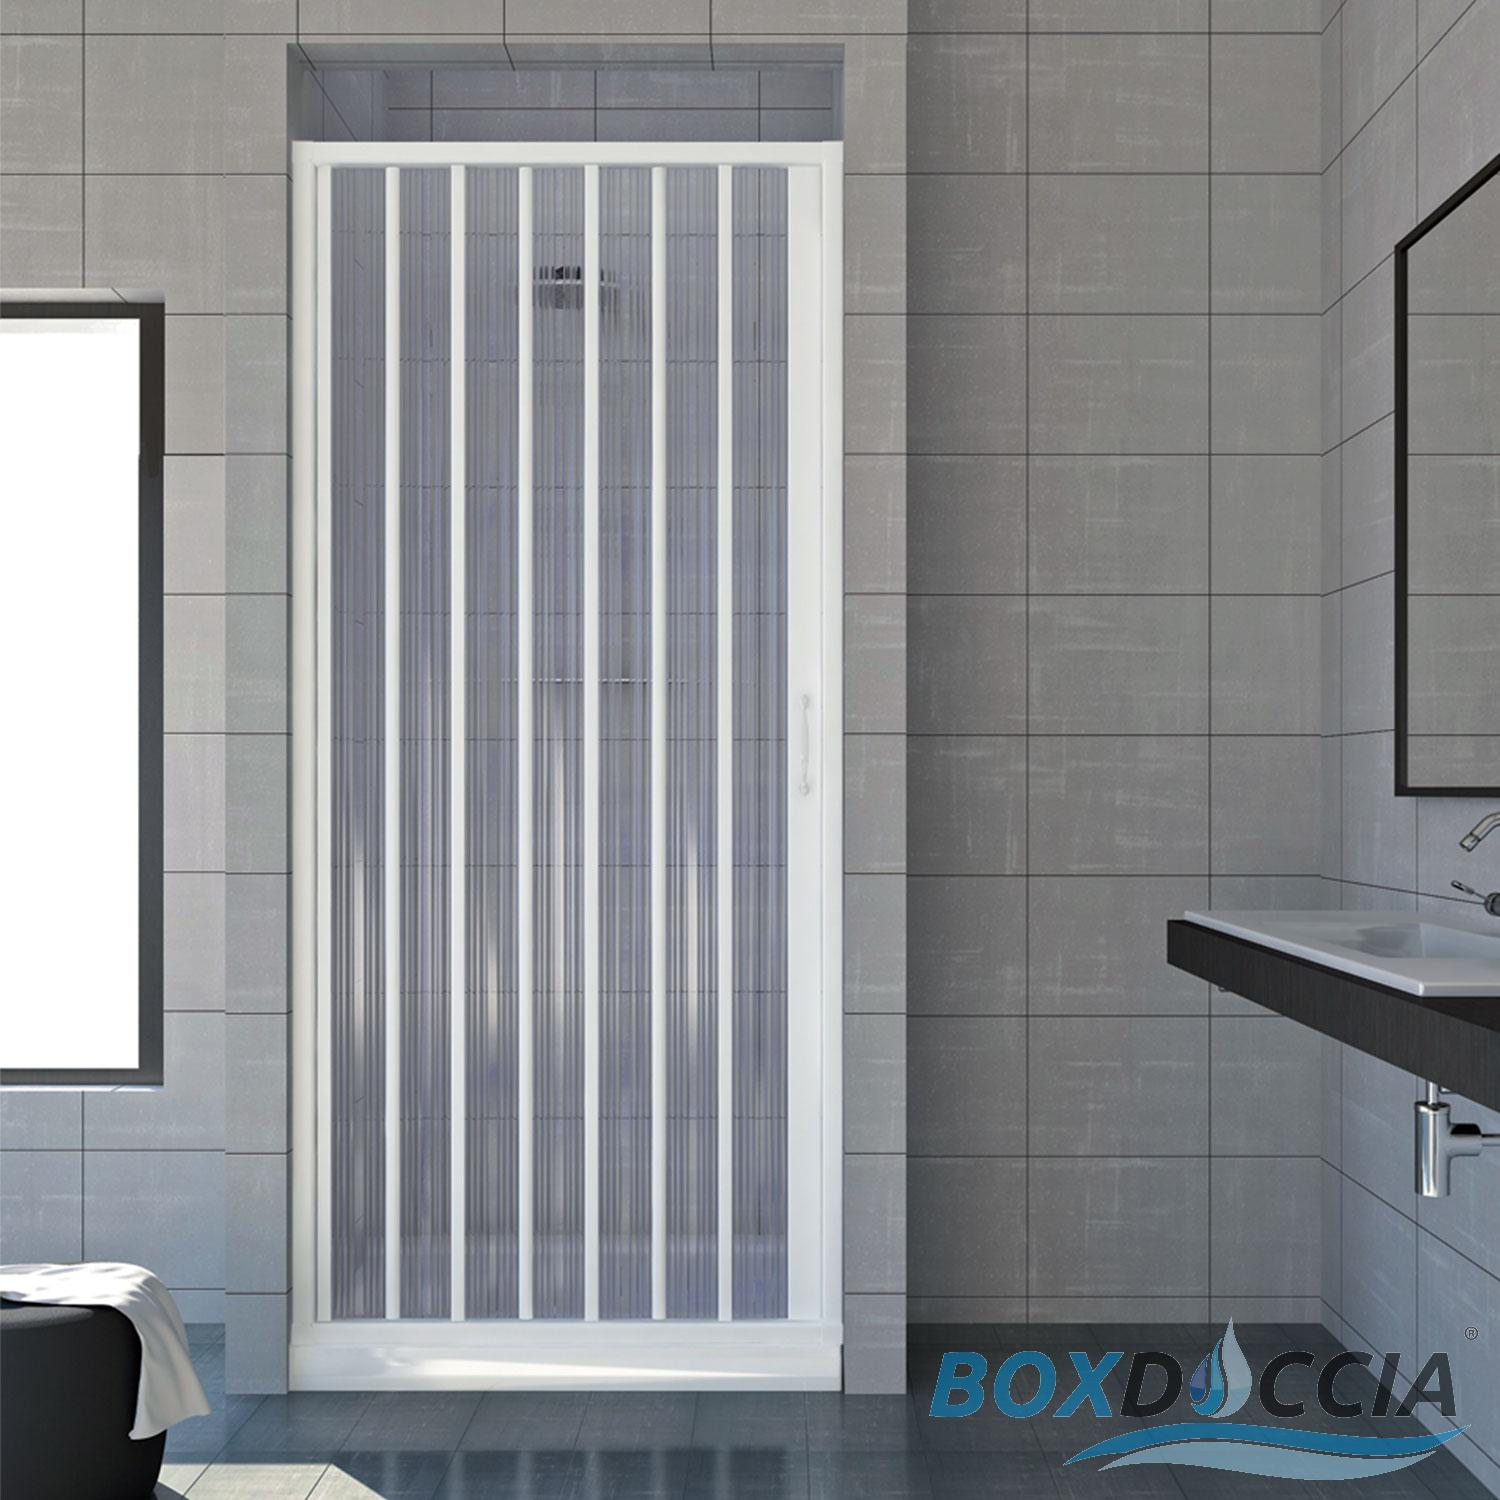 cabine paroi porte de douche niche pliante plastique pvc 14 couleurs sur mesure ebay. Black Bedroom Furniture Sets. Home Design Ideas